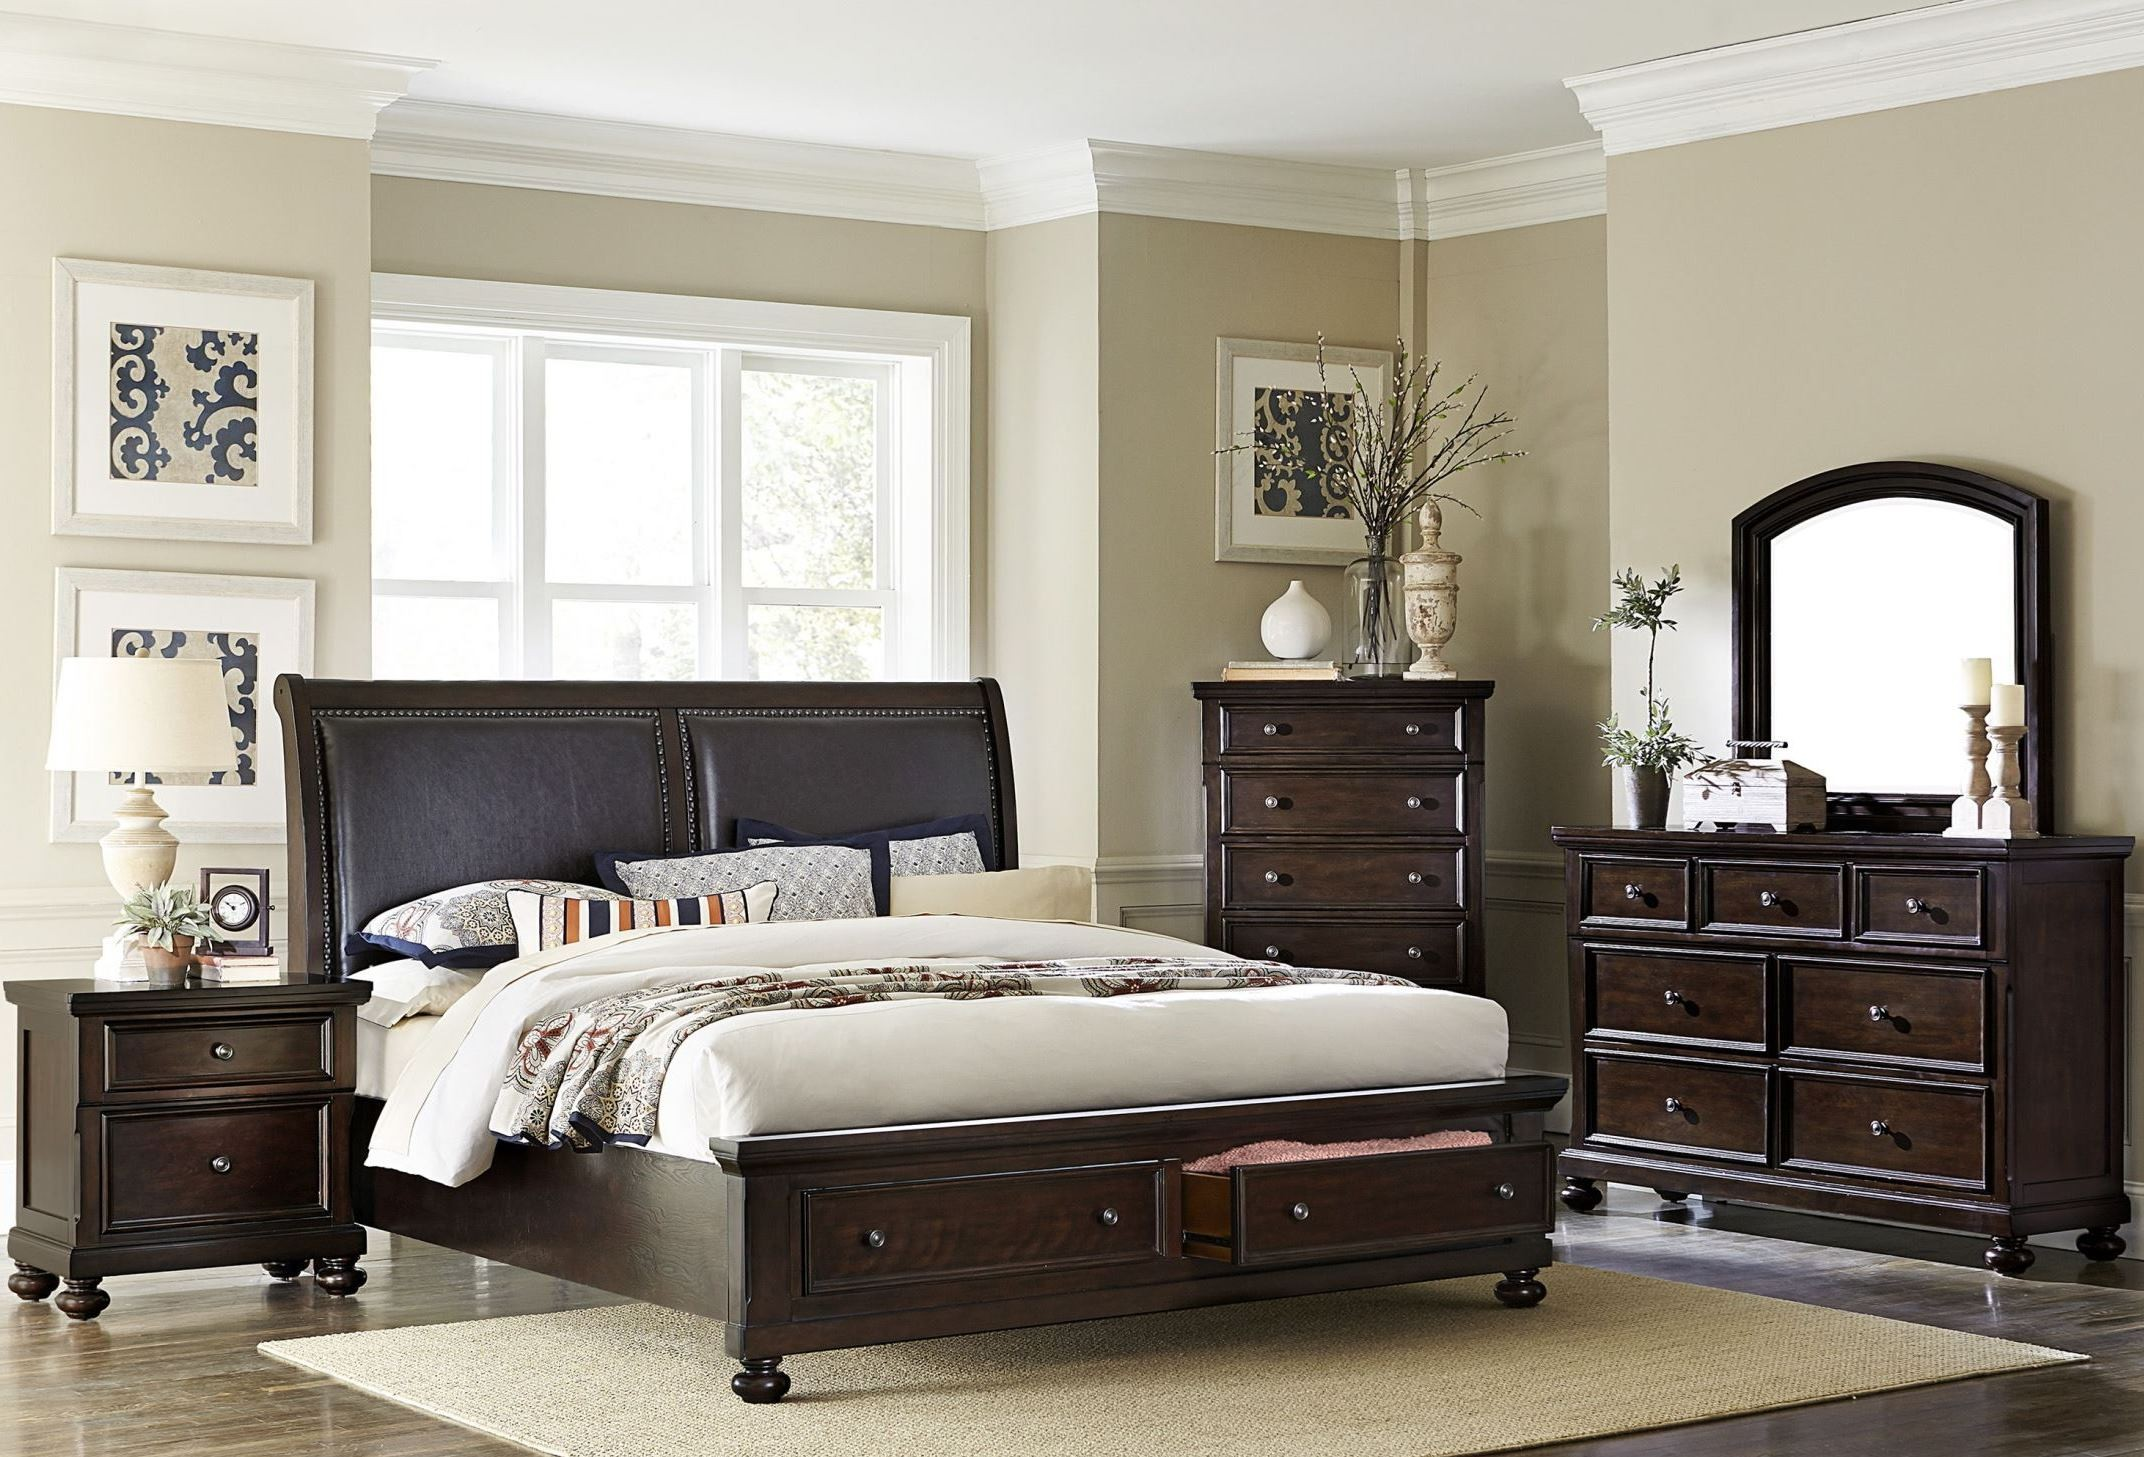 Faust Dark Cherry Storage Platform Bedroom Set from